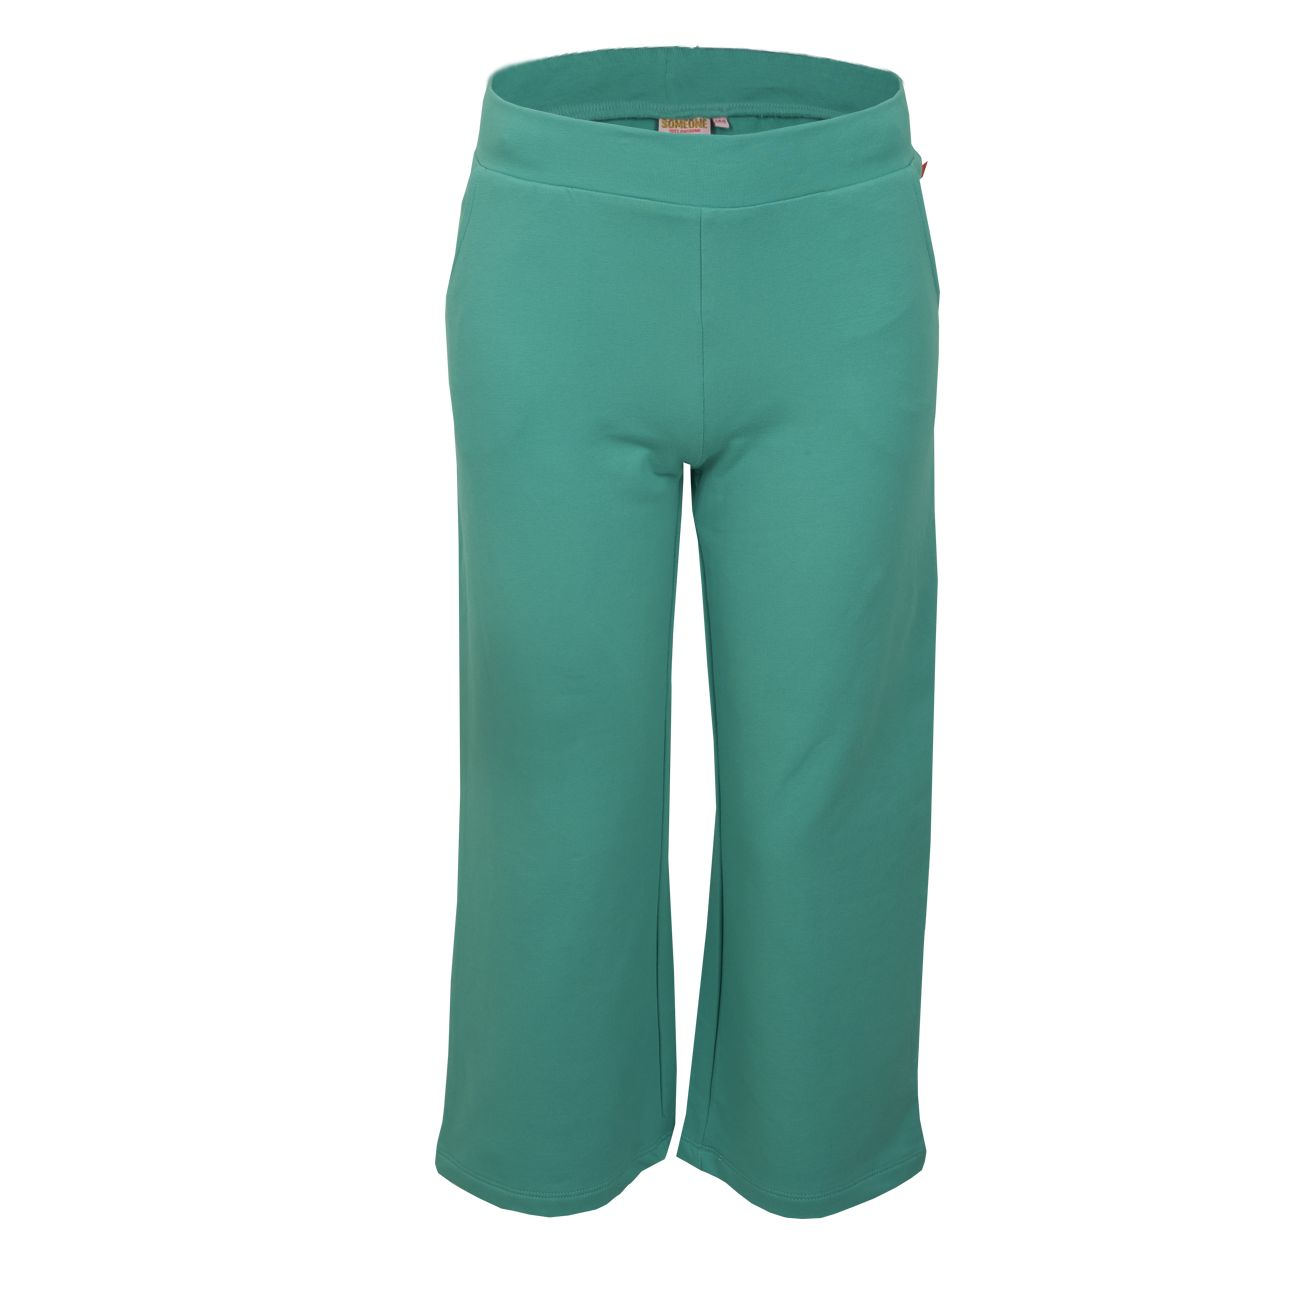 Culotte 116 Mint SOMEONE 100% Awesome